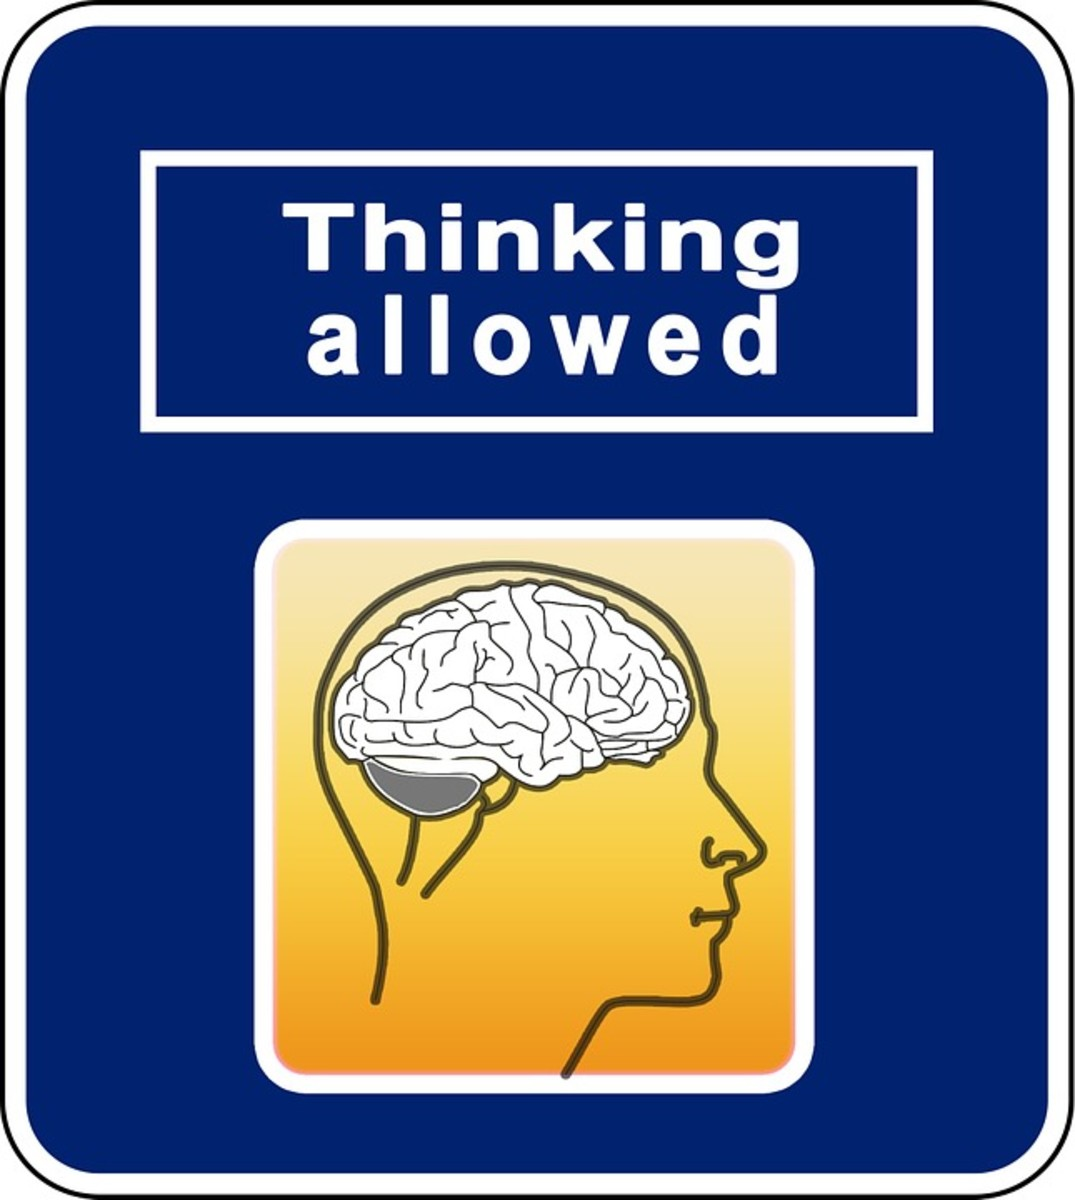 Sometimes, NO thinking is allowed.